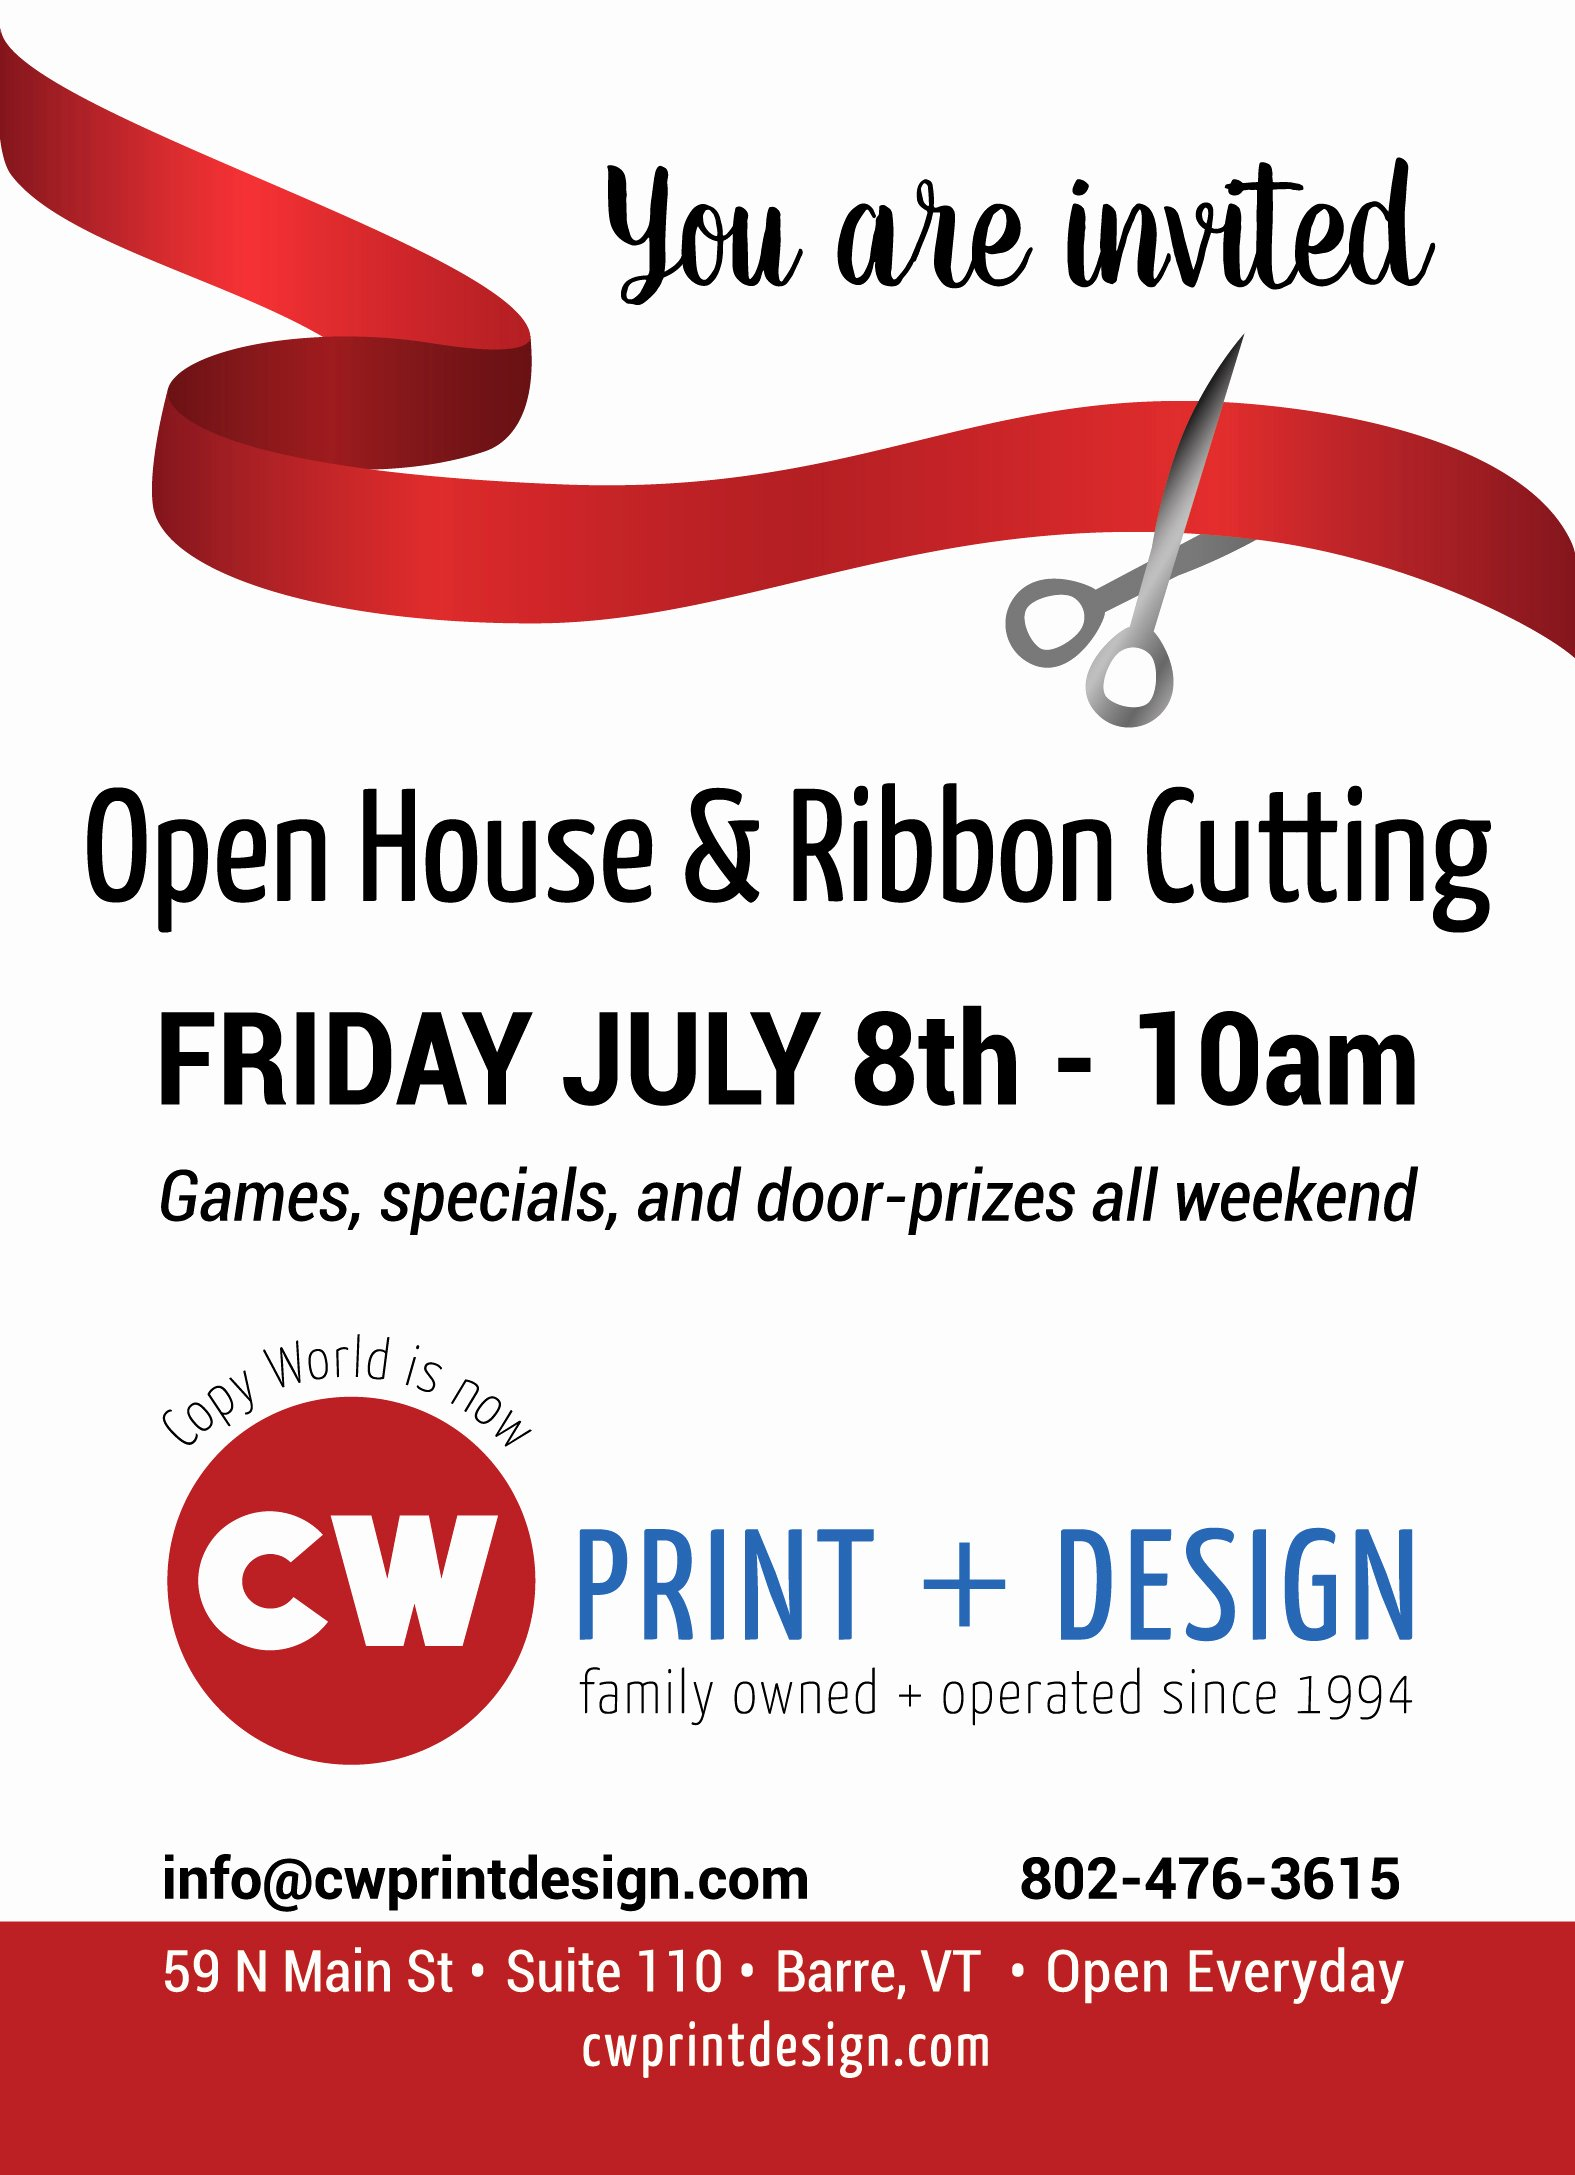 Ribbon Cutting Invite Template Beautiful Ribbon Cutting Friday July 8th 10am Copy World is now